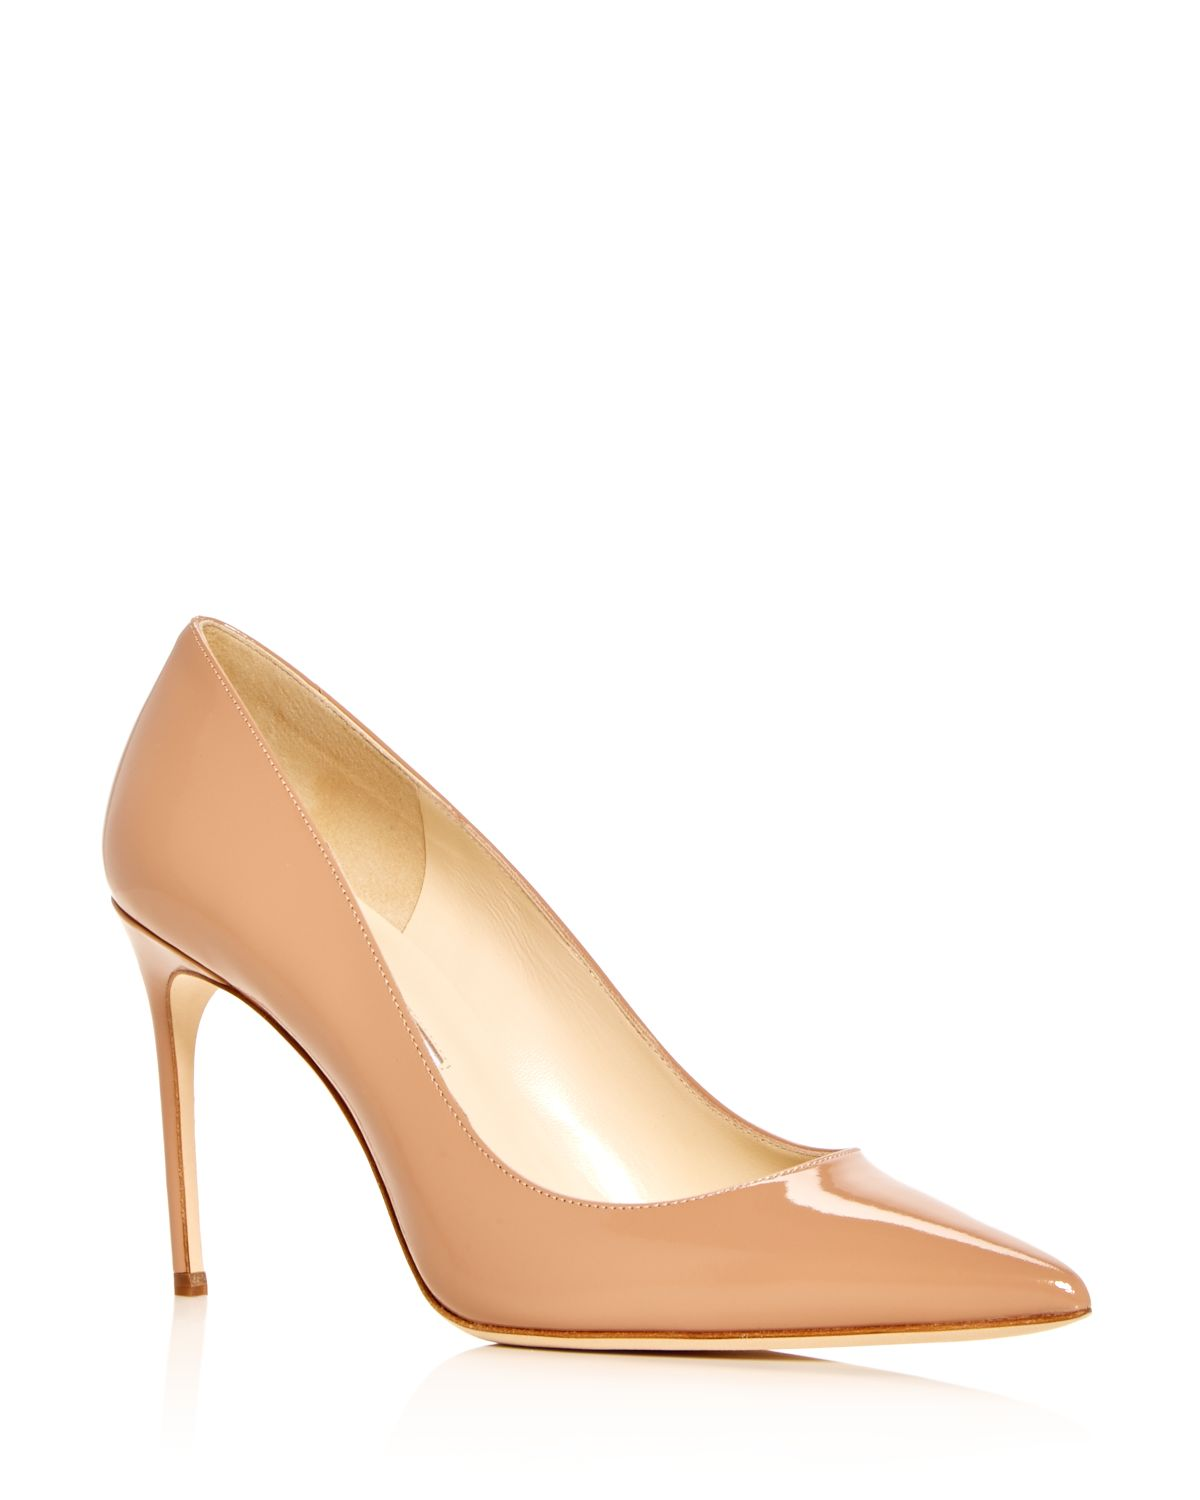 BRIAN ATWOOD Women's Valerie Pointy Toe Pump